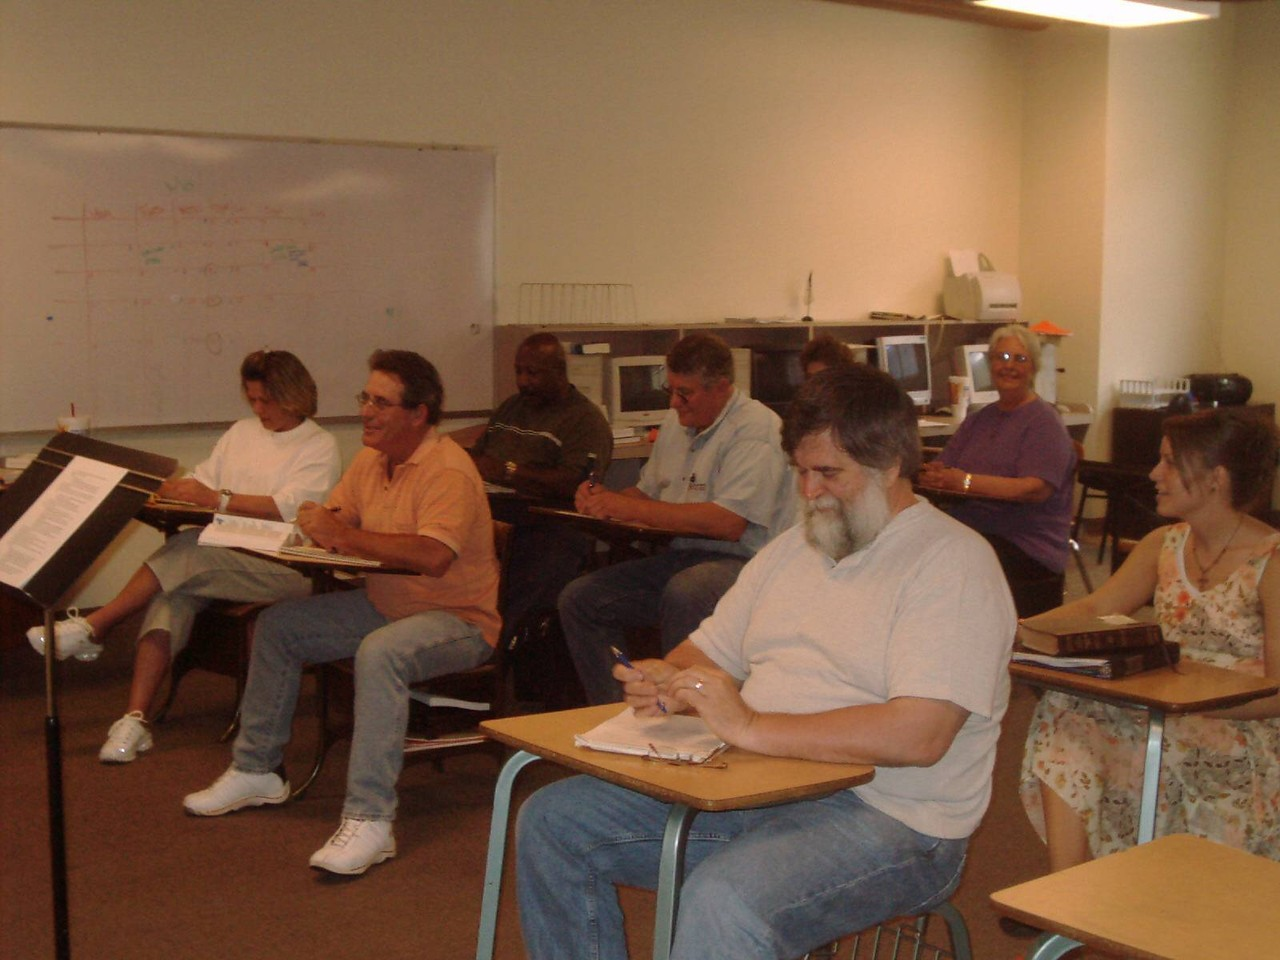 Students learn through classroom instruction, DVDs, and online training.